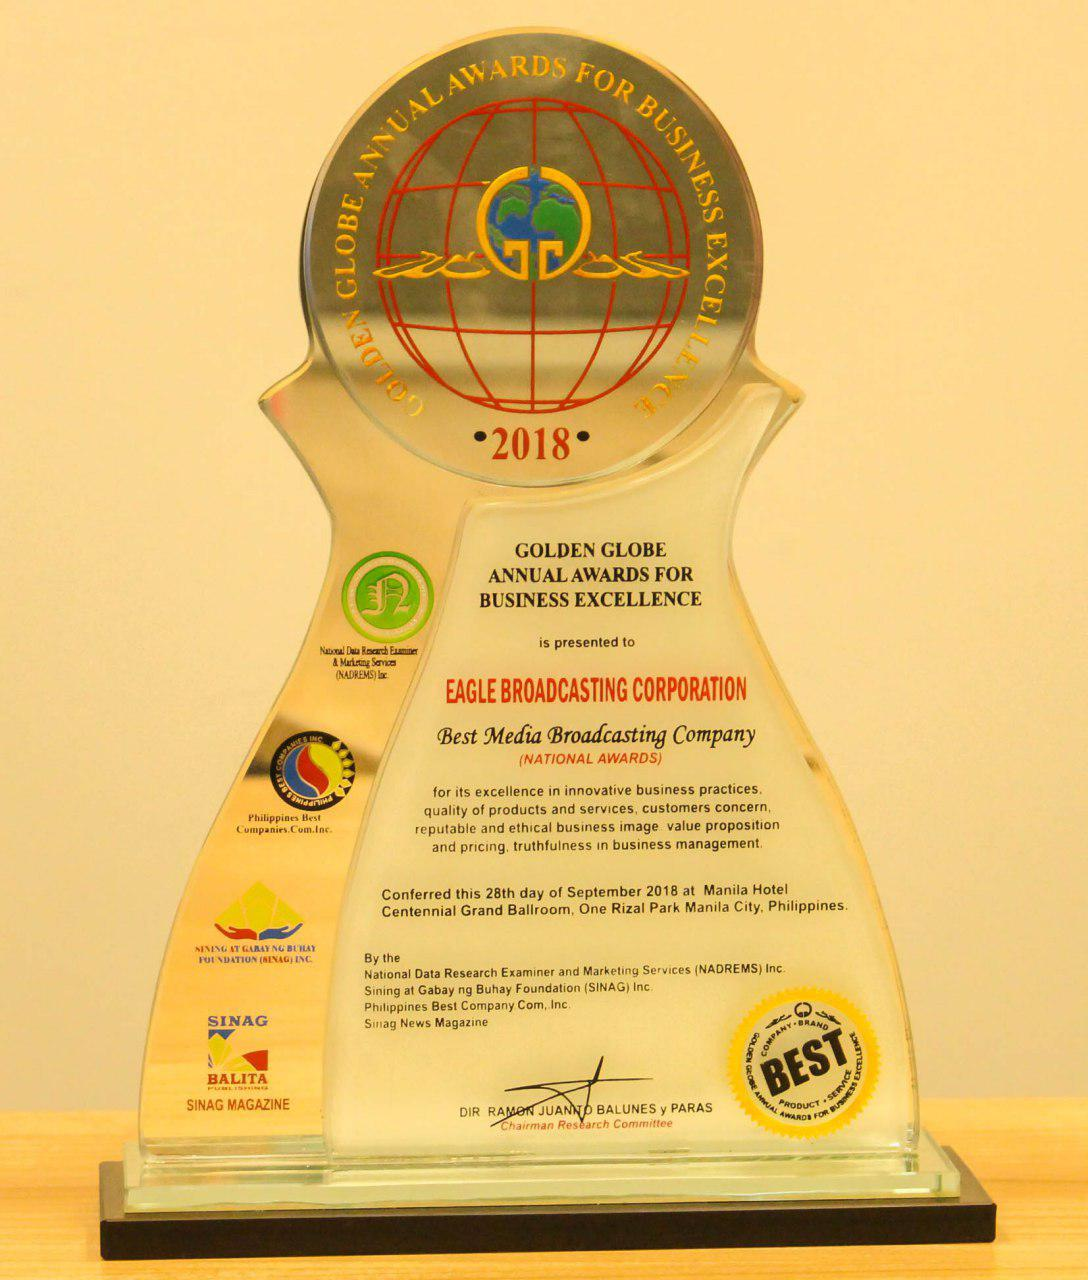 Ebc Named As Best Media Broadcasting Company For 2018 By Phl Golden Globe Awards For Business Excellence